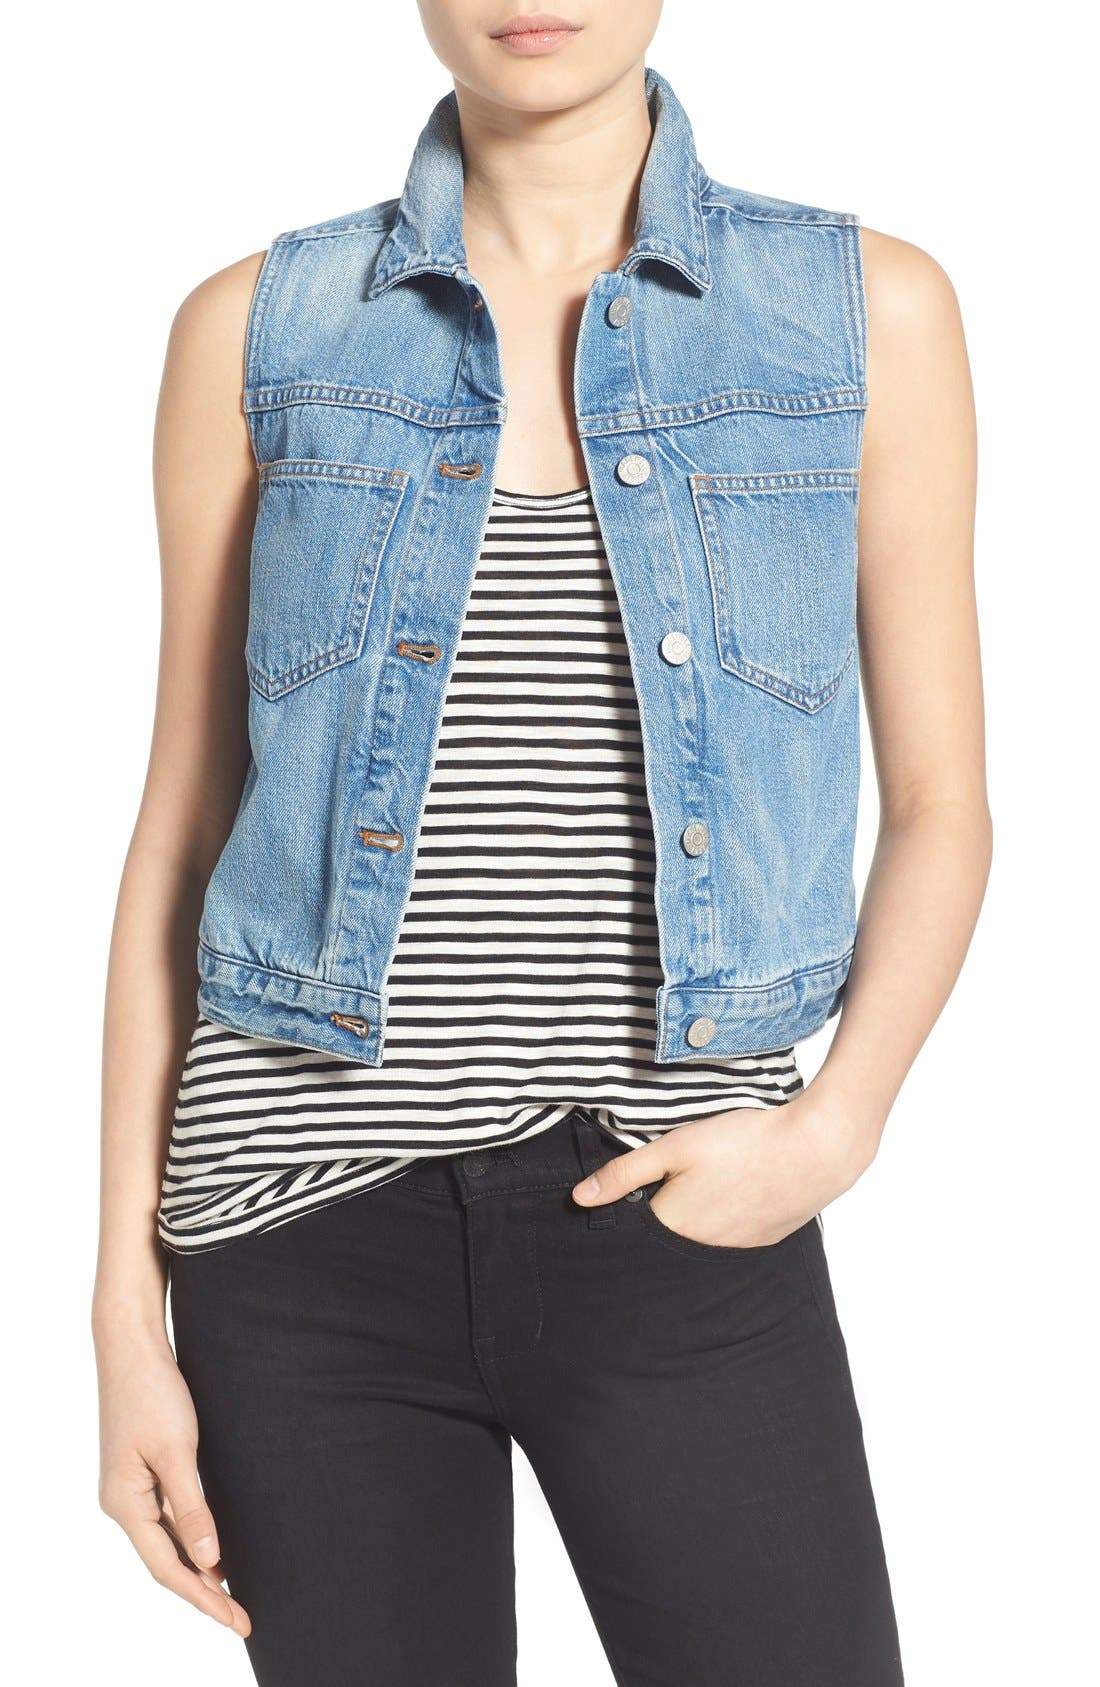 MADEWELL,                             Chest Pocket Denim Vest,                             Main thumbnail 1, color,                             400